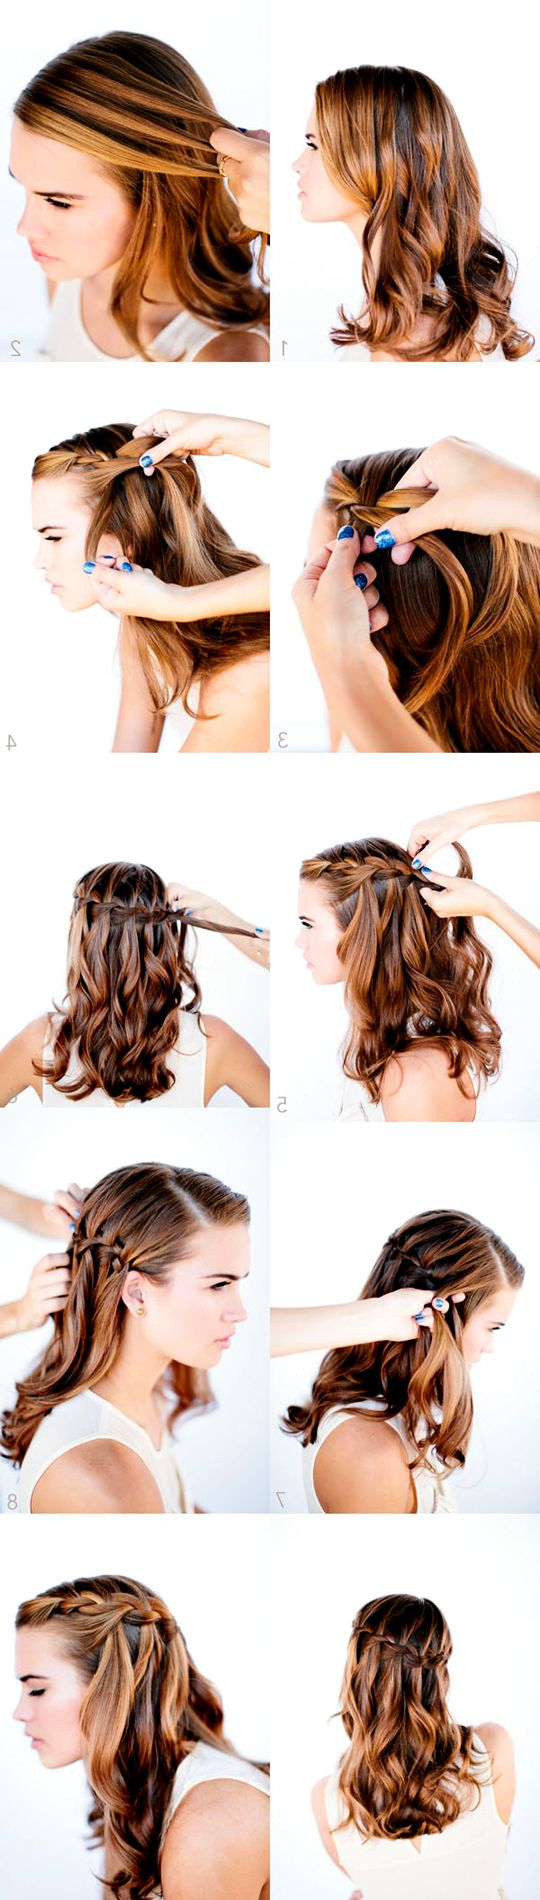 new wedding hairstyles step by step with pictures - http://ytnetwork.net/2016/04/02/new-wedding-hairstyles-step-by-step-with-pictures/